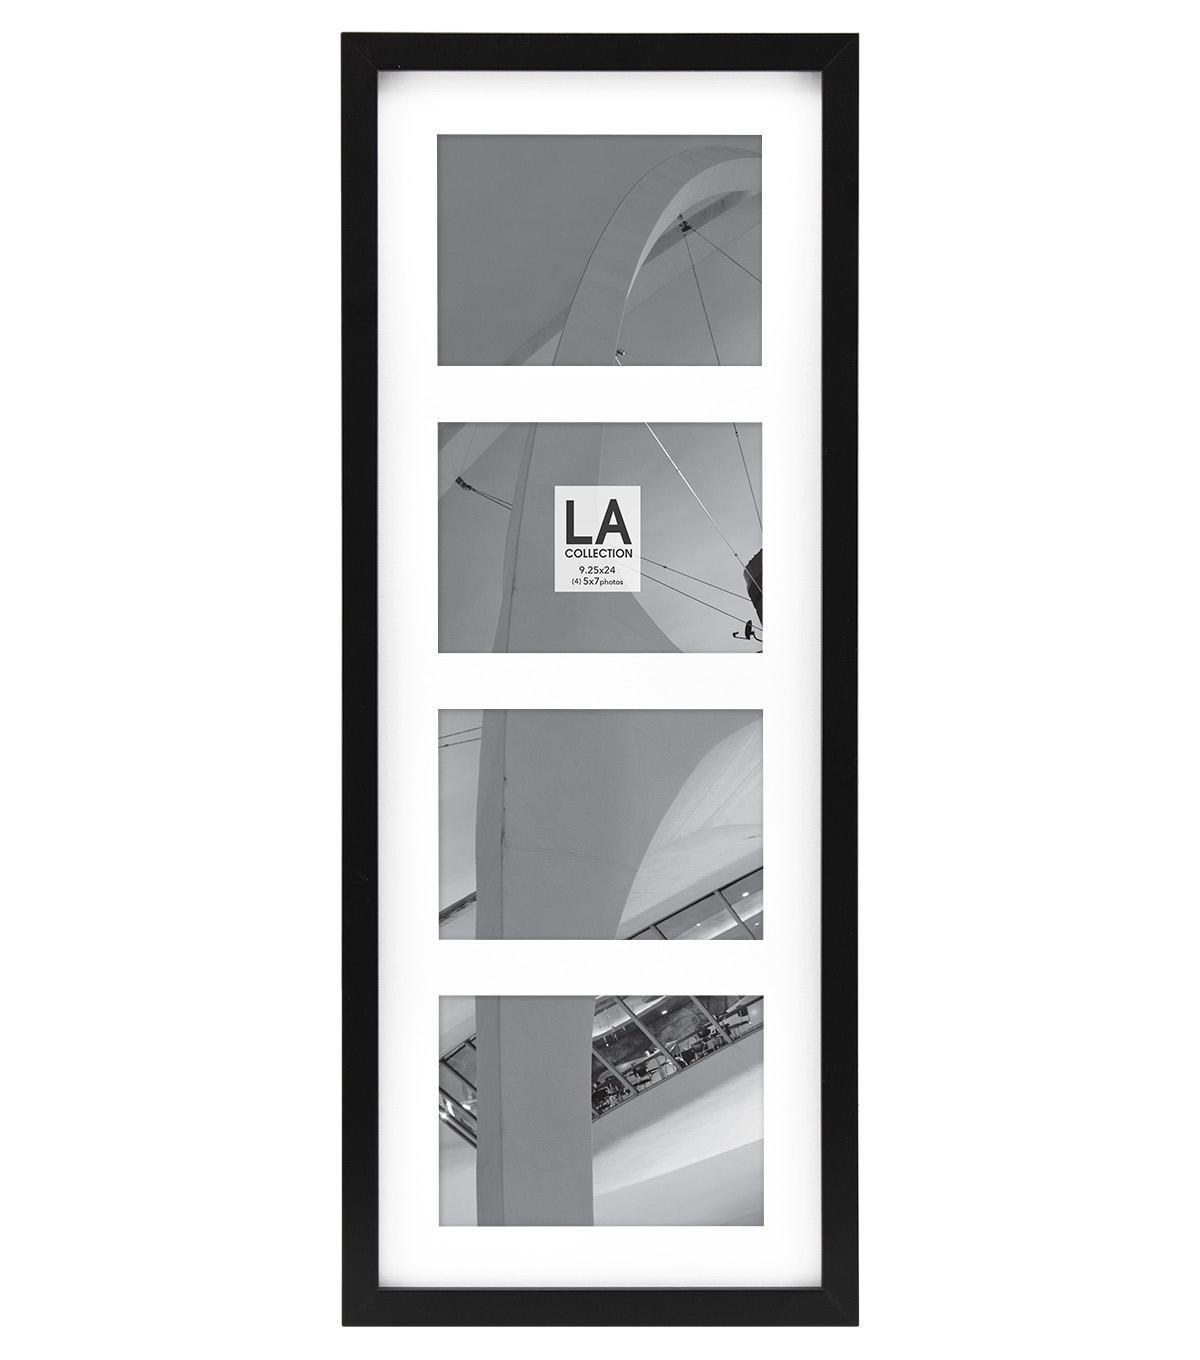 LA Collection Wall Collage Frame with 4 Openings 5\'\'x7\'\'-Black | JOANN